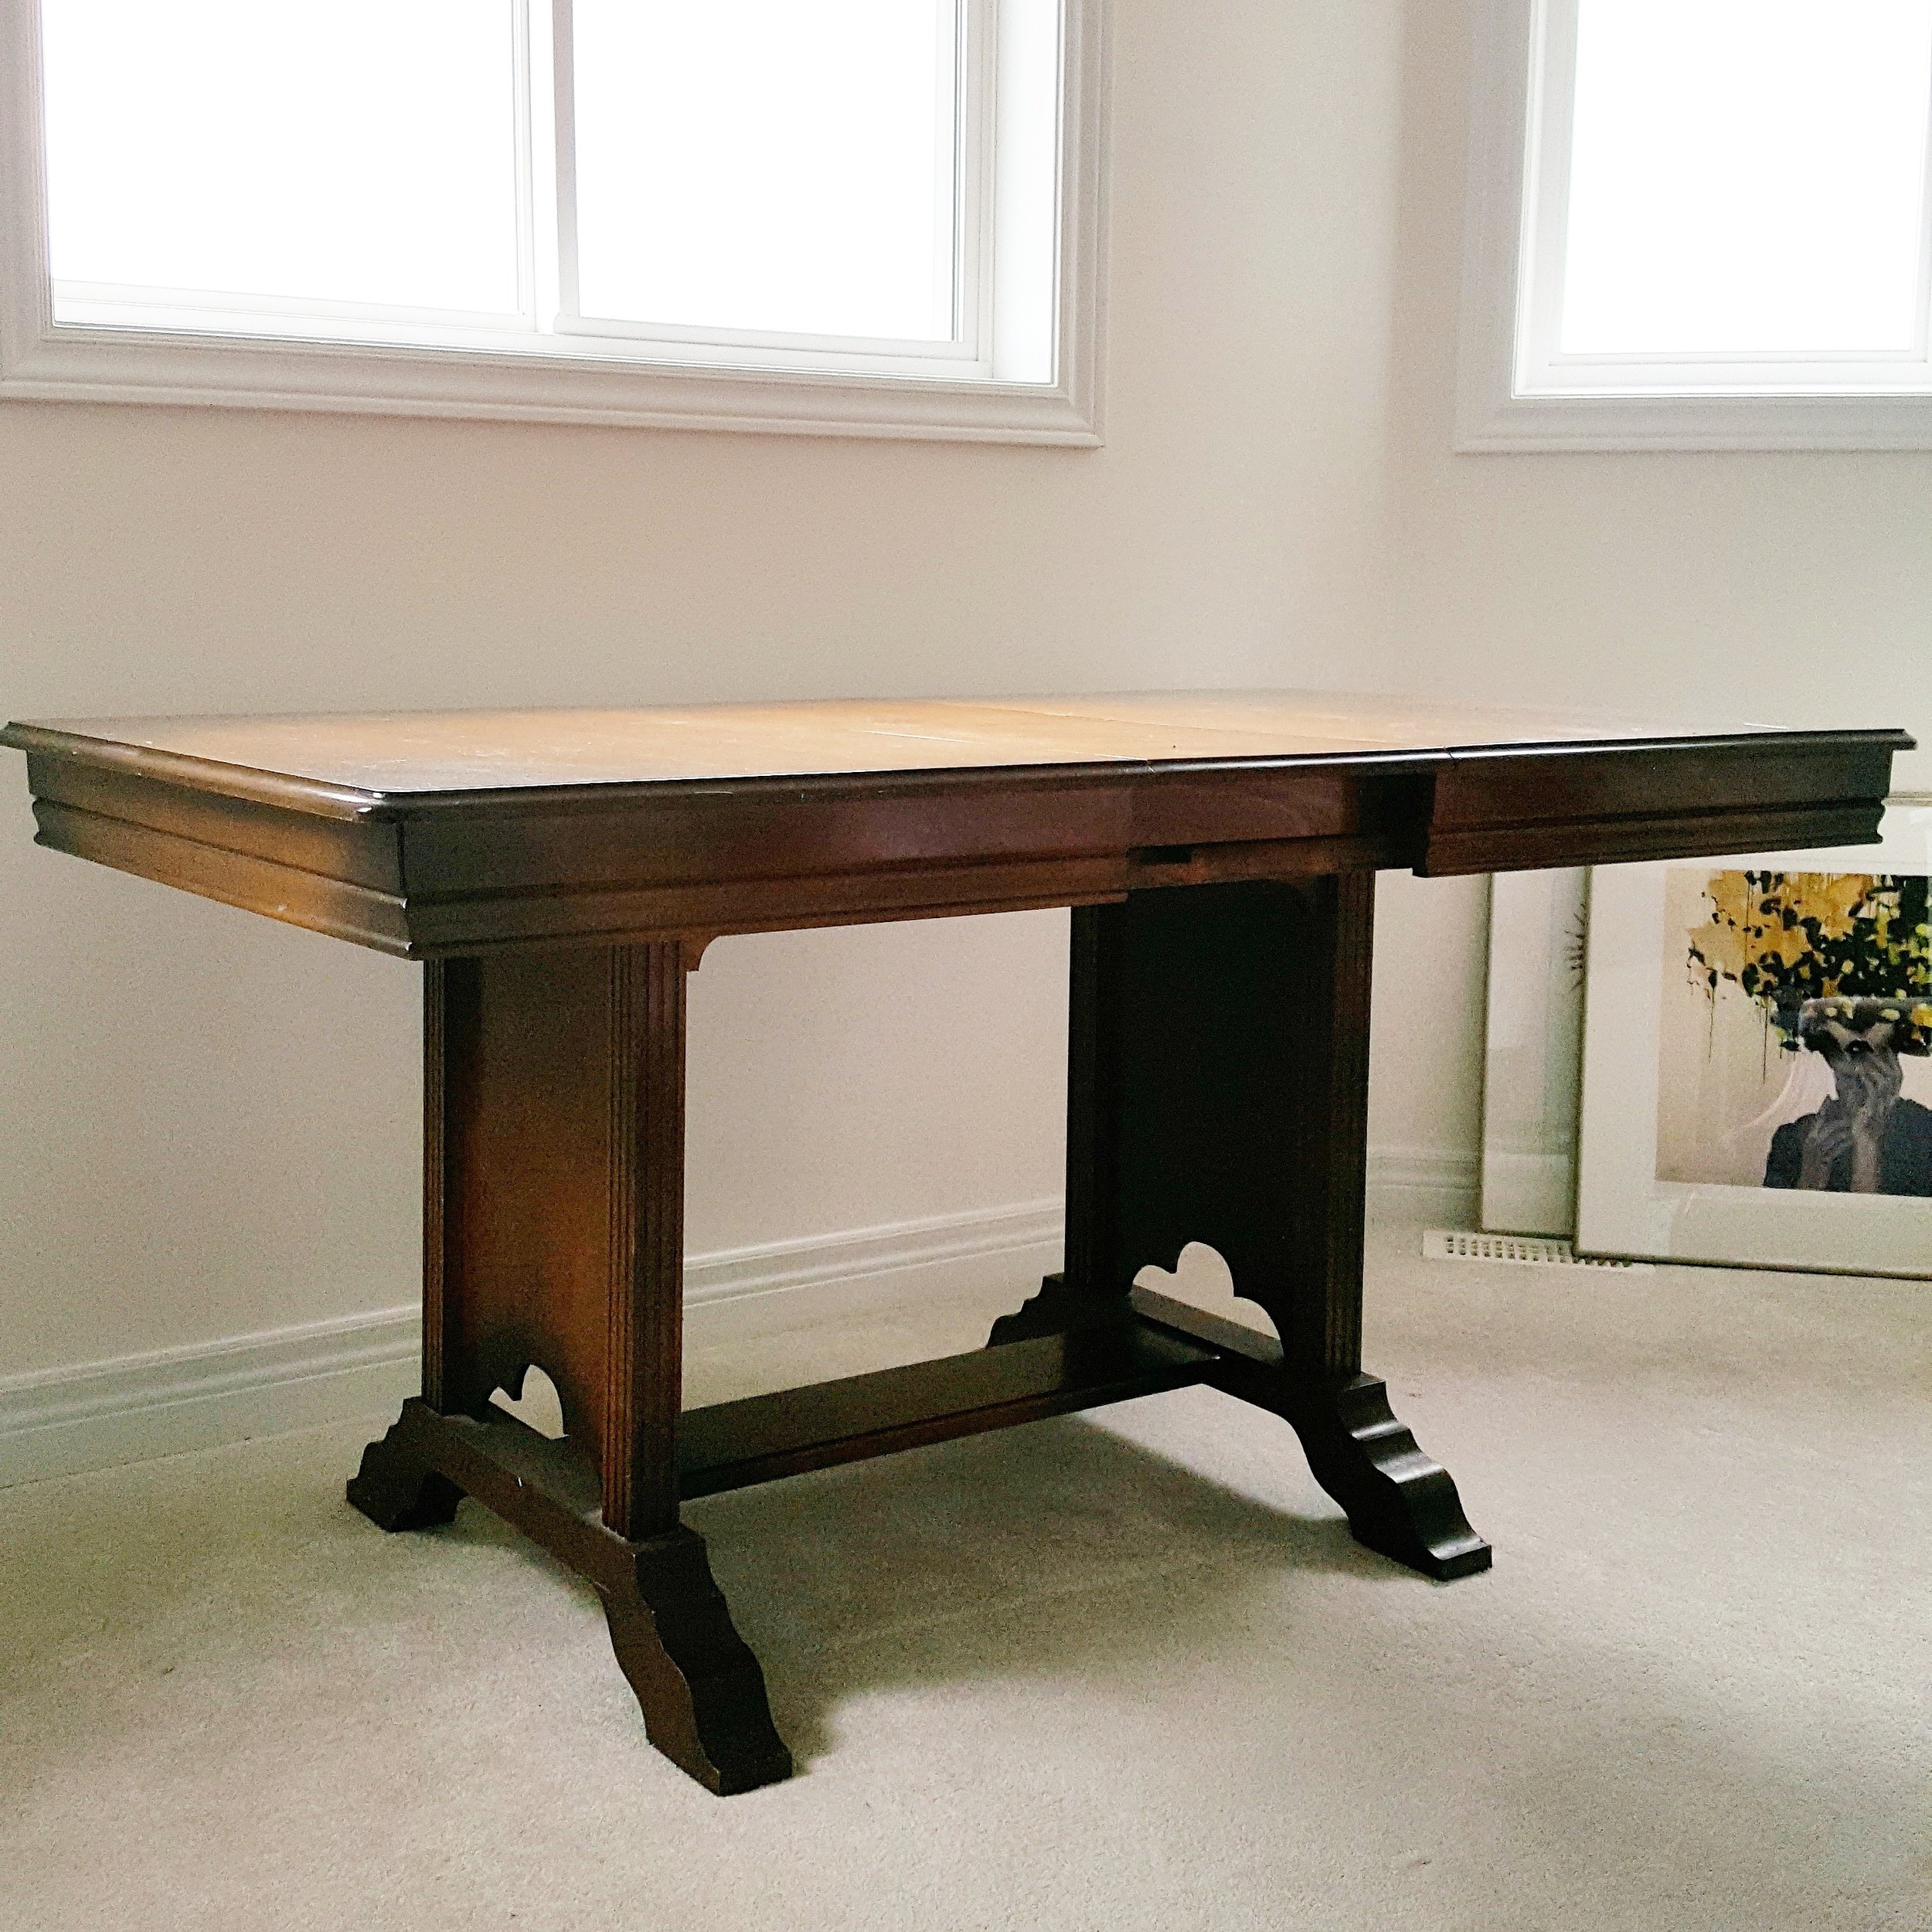 dining table turned desk!